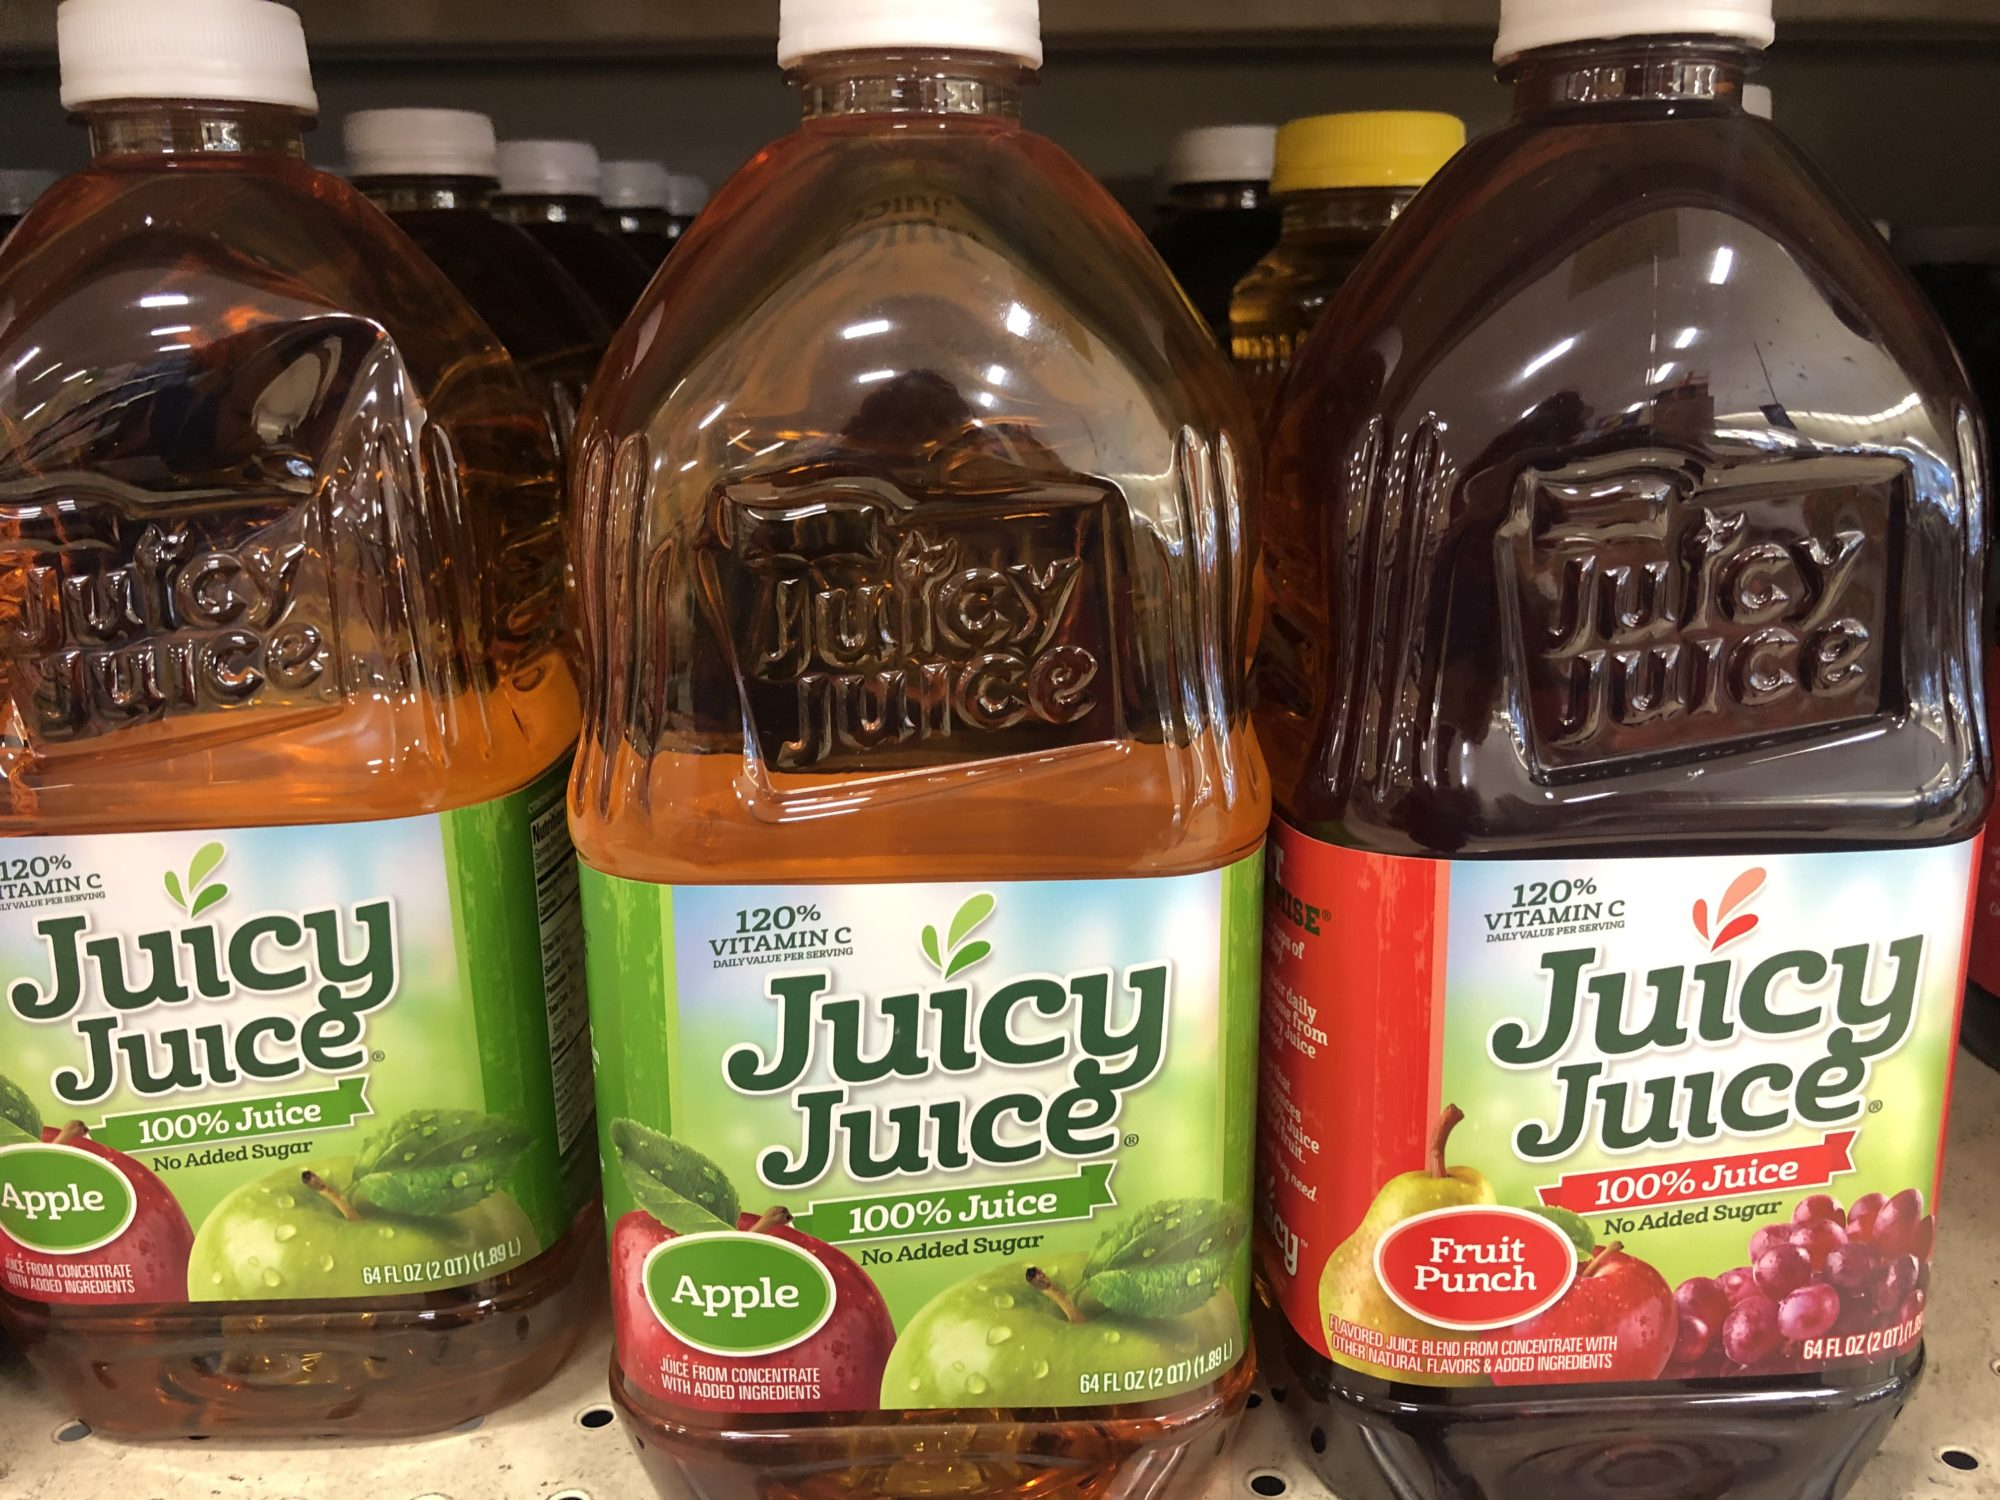 ShopRite: Juicy Juice 64 Oz Bottles Just $0.99 Each Thru 11/16!